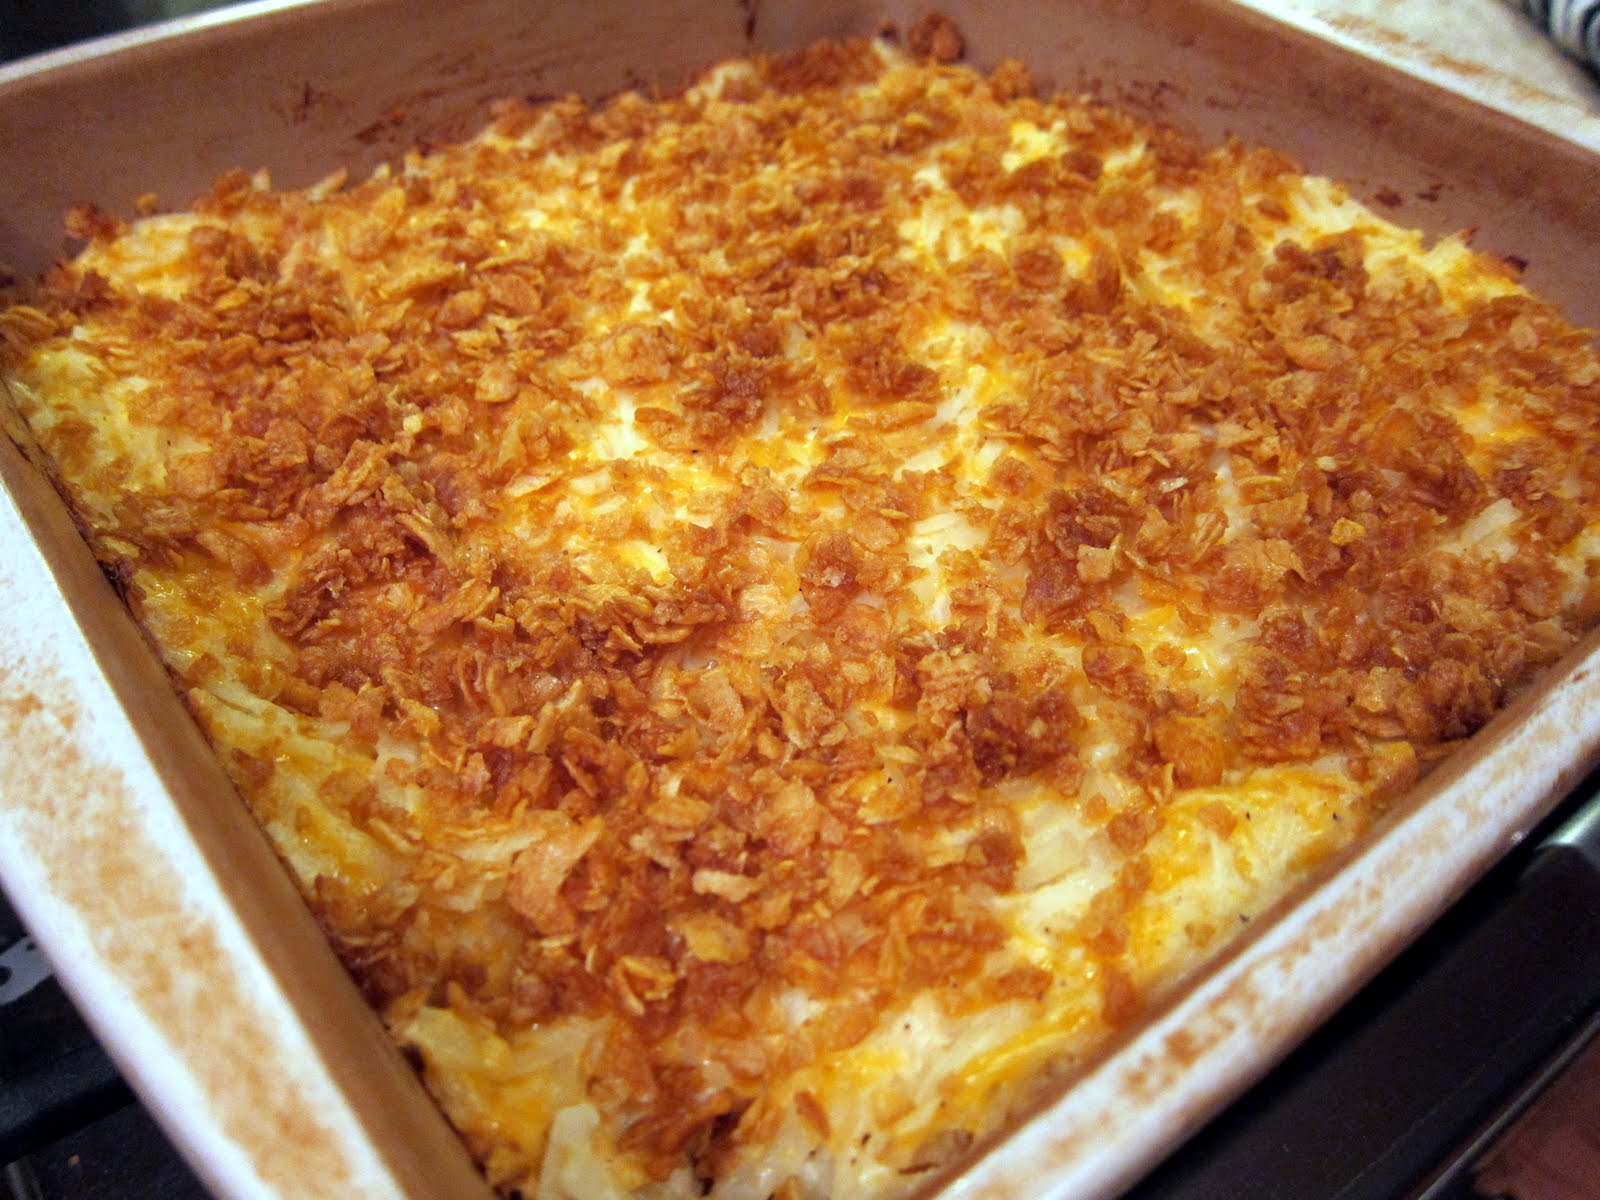 Cheesy Potatoes for 50 People http://www.plainchicken.com/2008/08/cheesy-potato-casserole.html